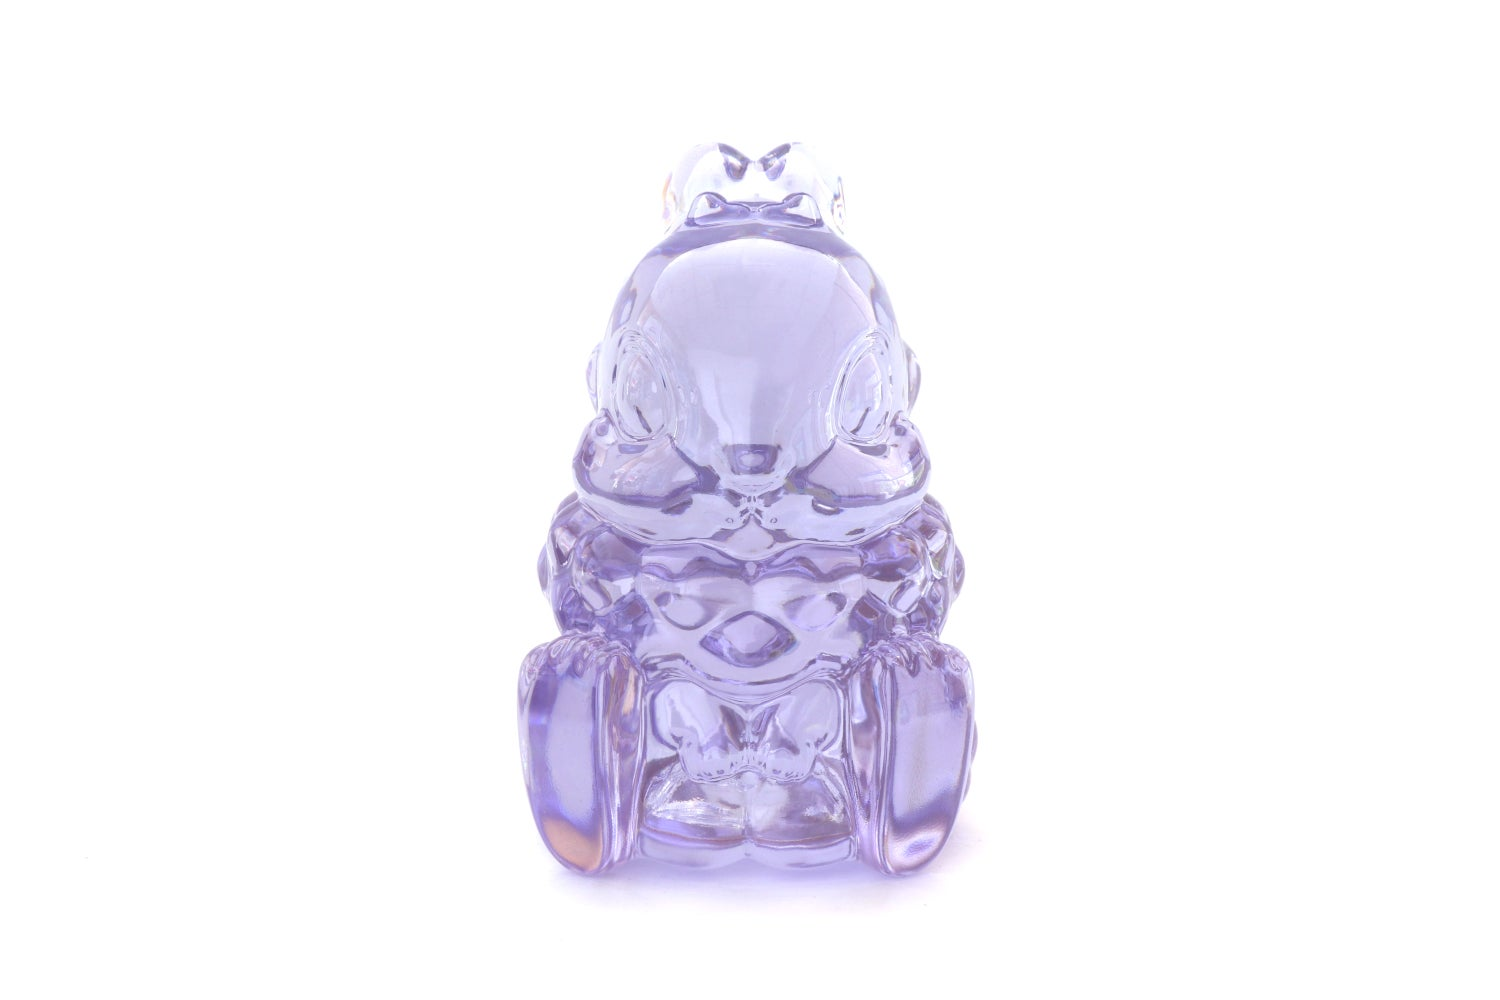 Image of PURPLE RABY 'GUMMI' RESIN STATUE (FREE SHIPPING PROMOTION)